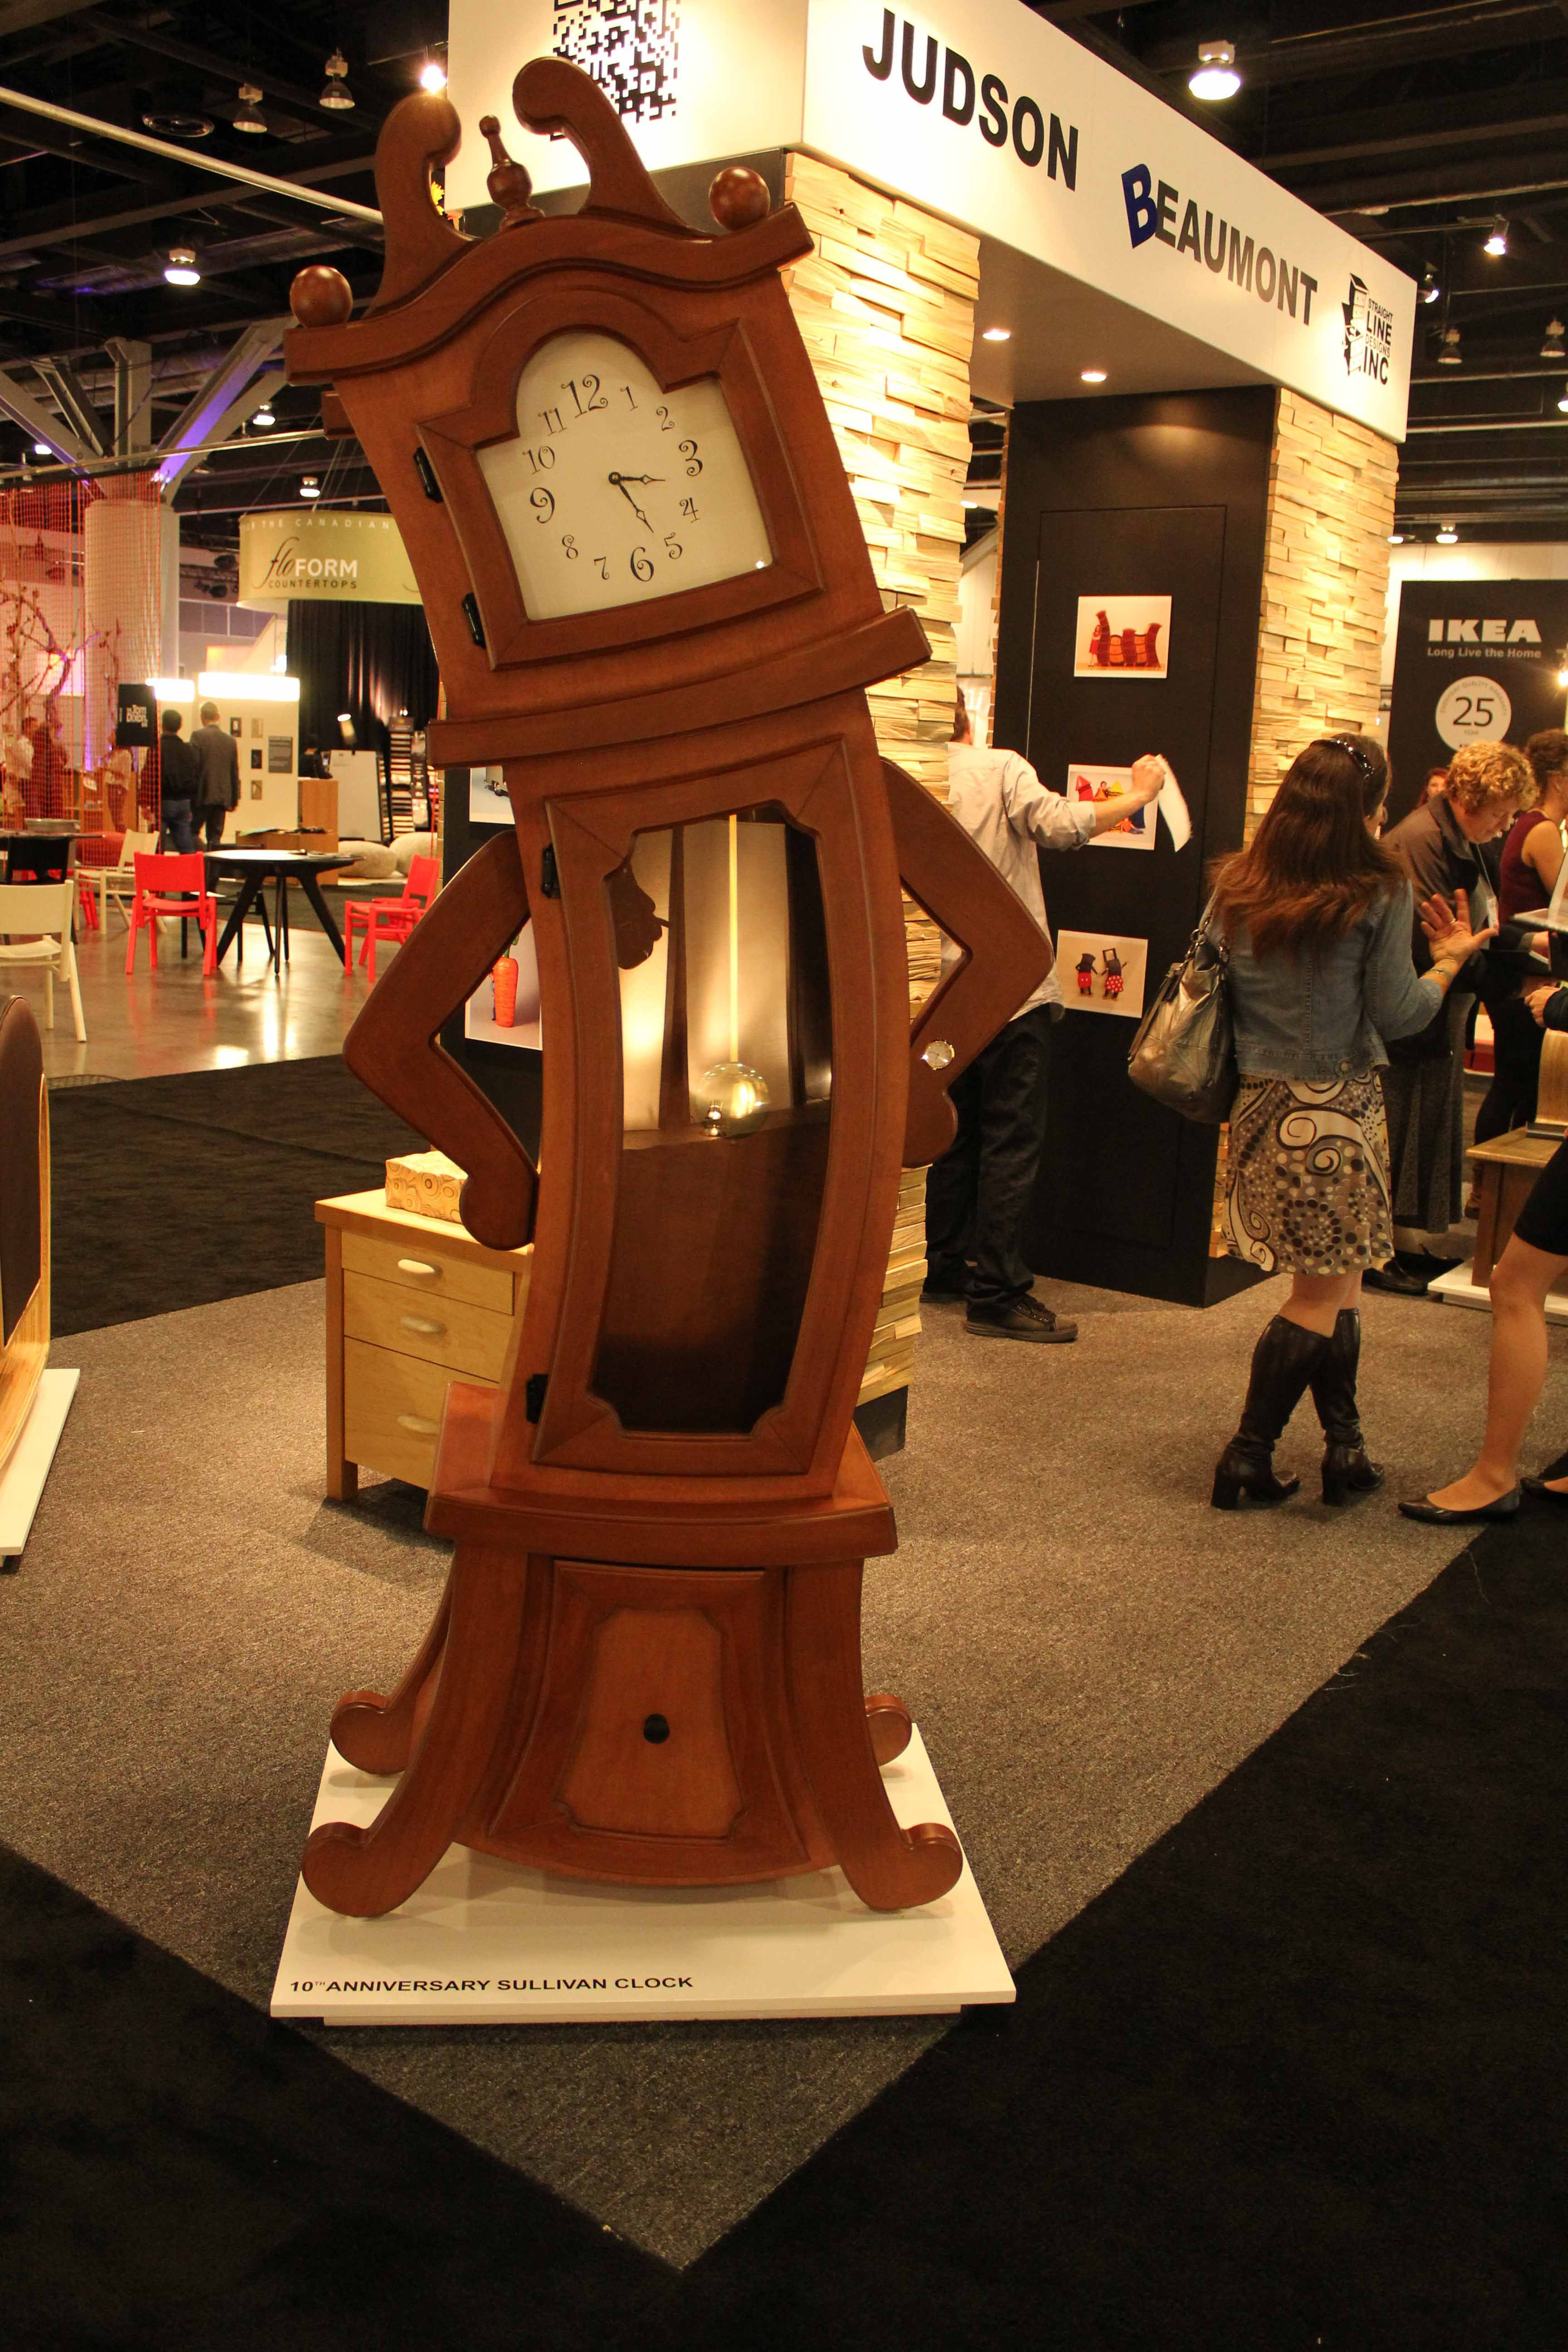 10th anniversary sullivan grandfather clock by straight - Beauty and the beast bedroom furniture ...